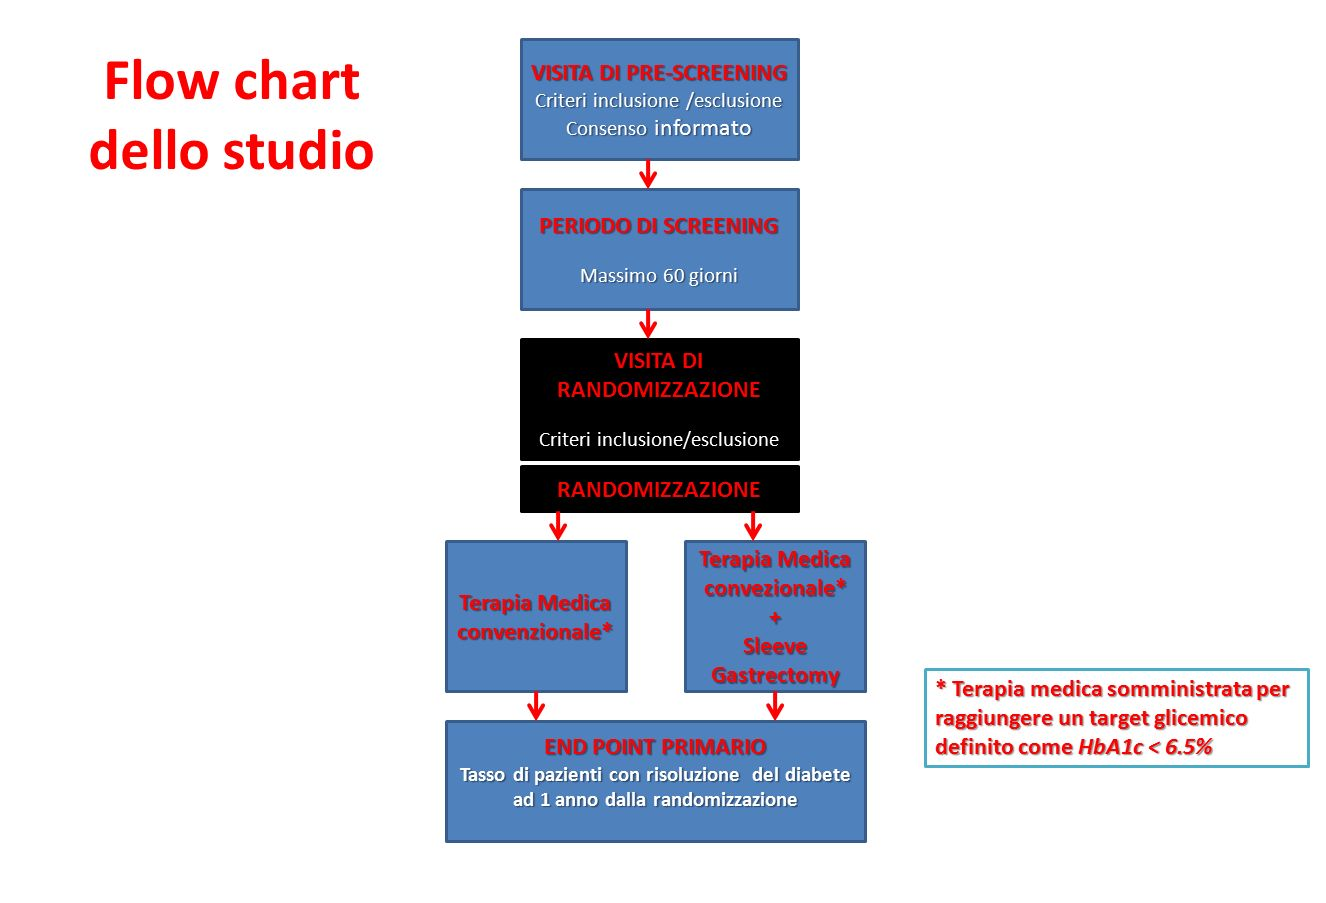 Flow chart dello studio